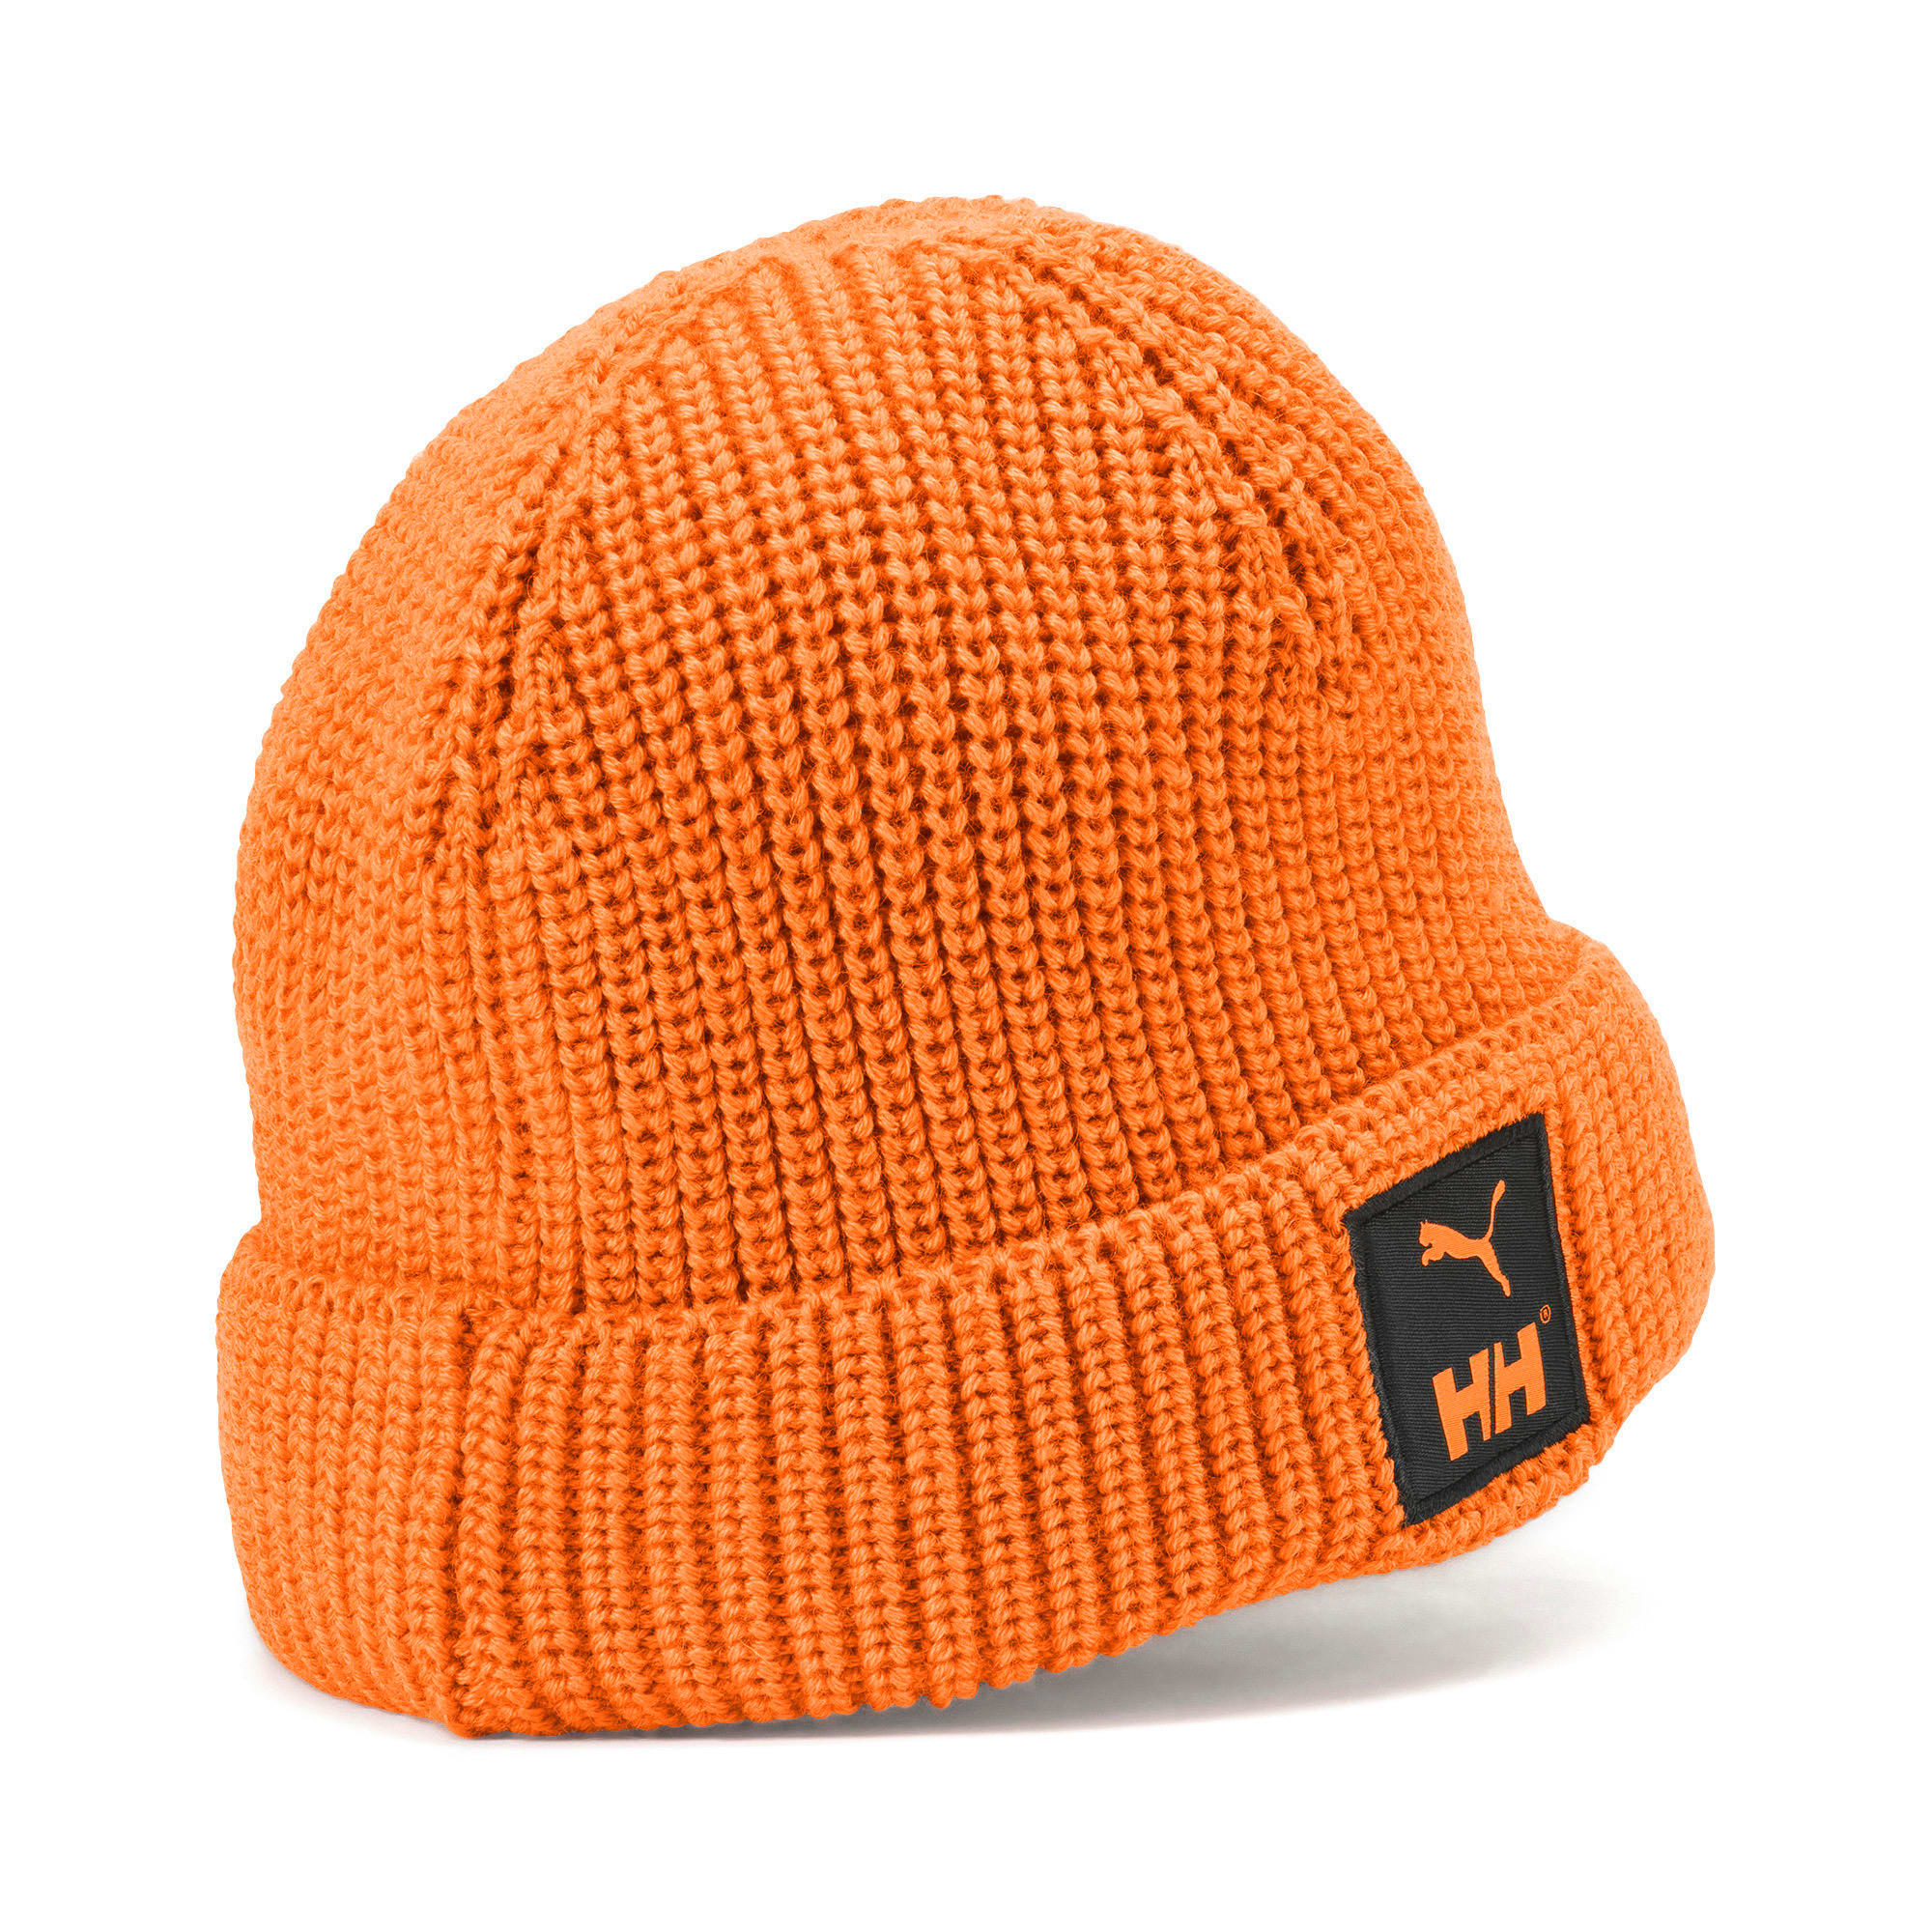 Thumbnail 2 of PUMA x HELLY HANSEN Beanie, Puma Black-Orange Popsicle, medium